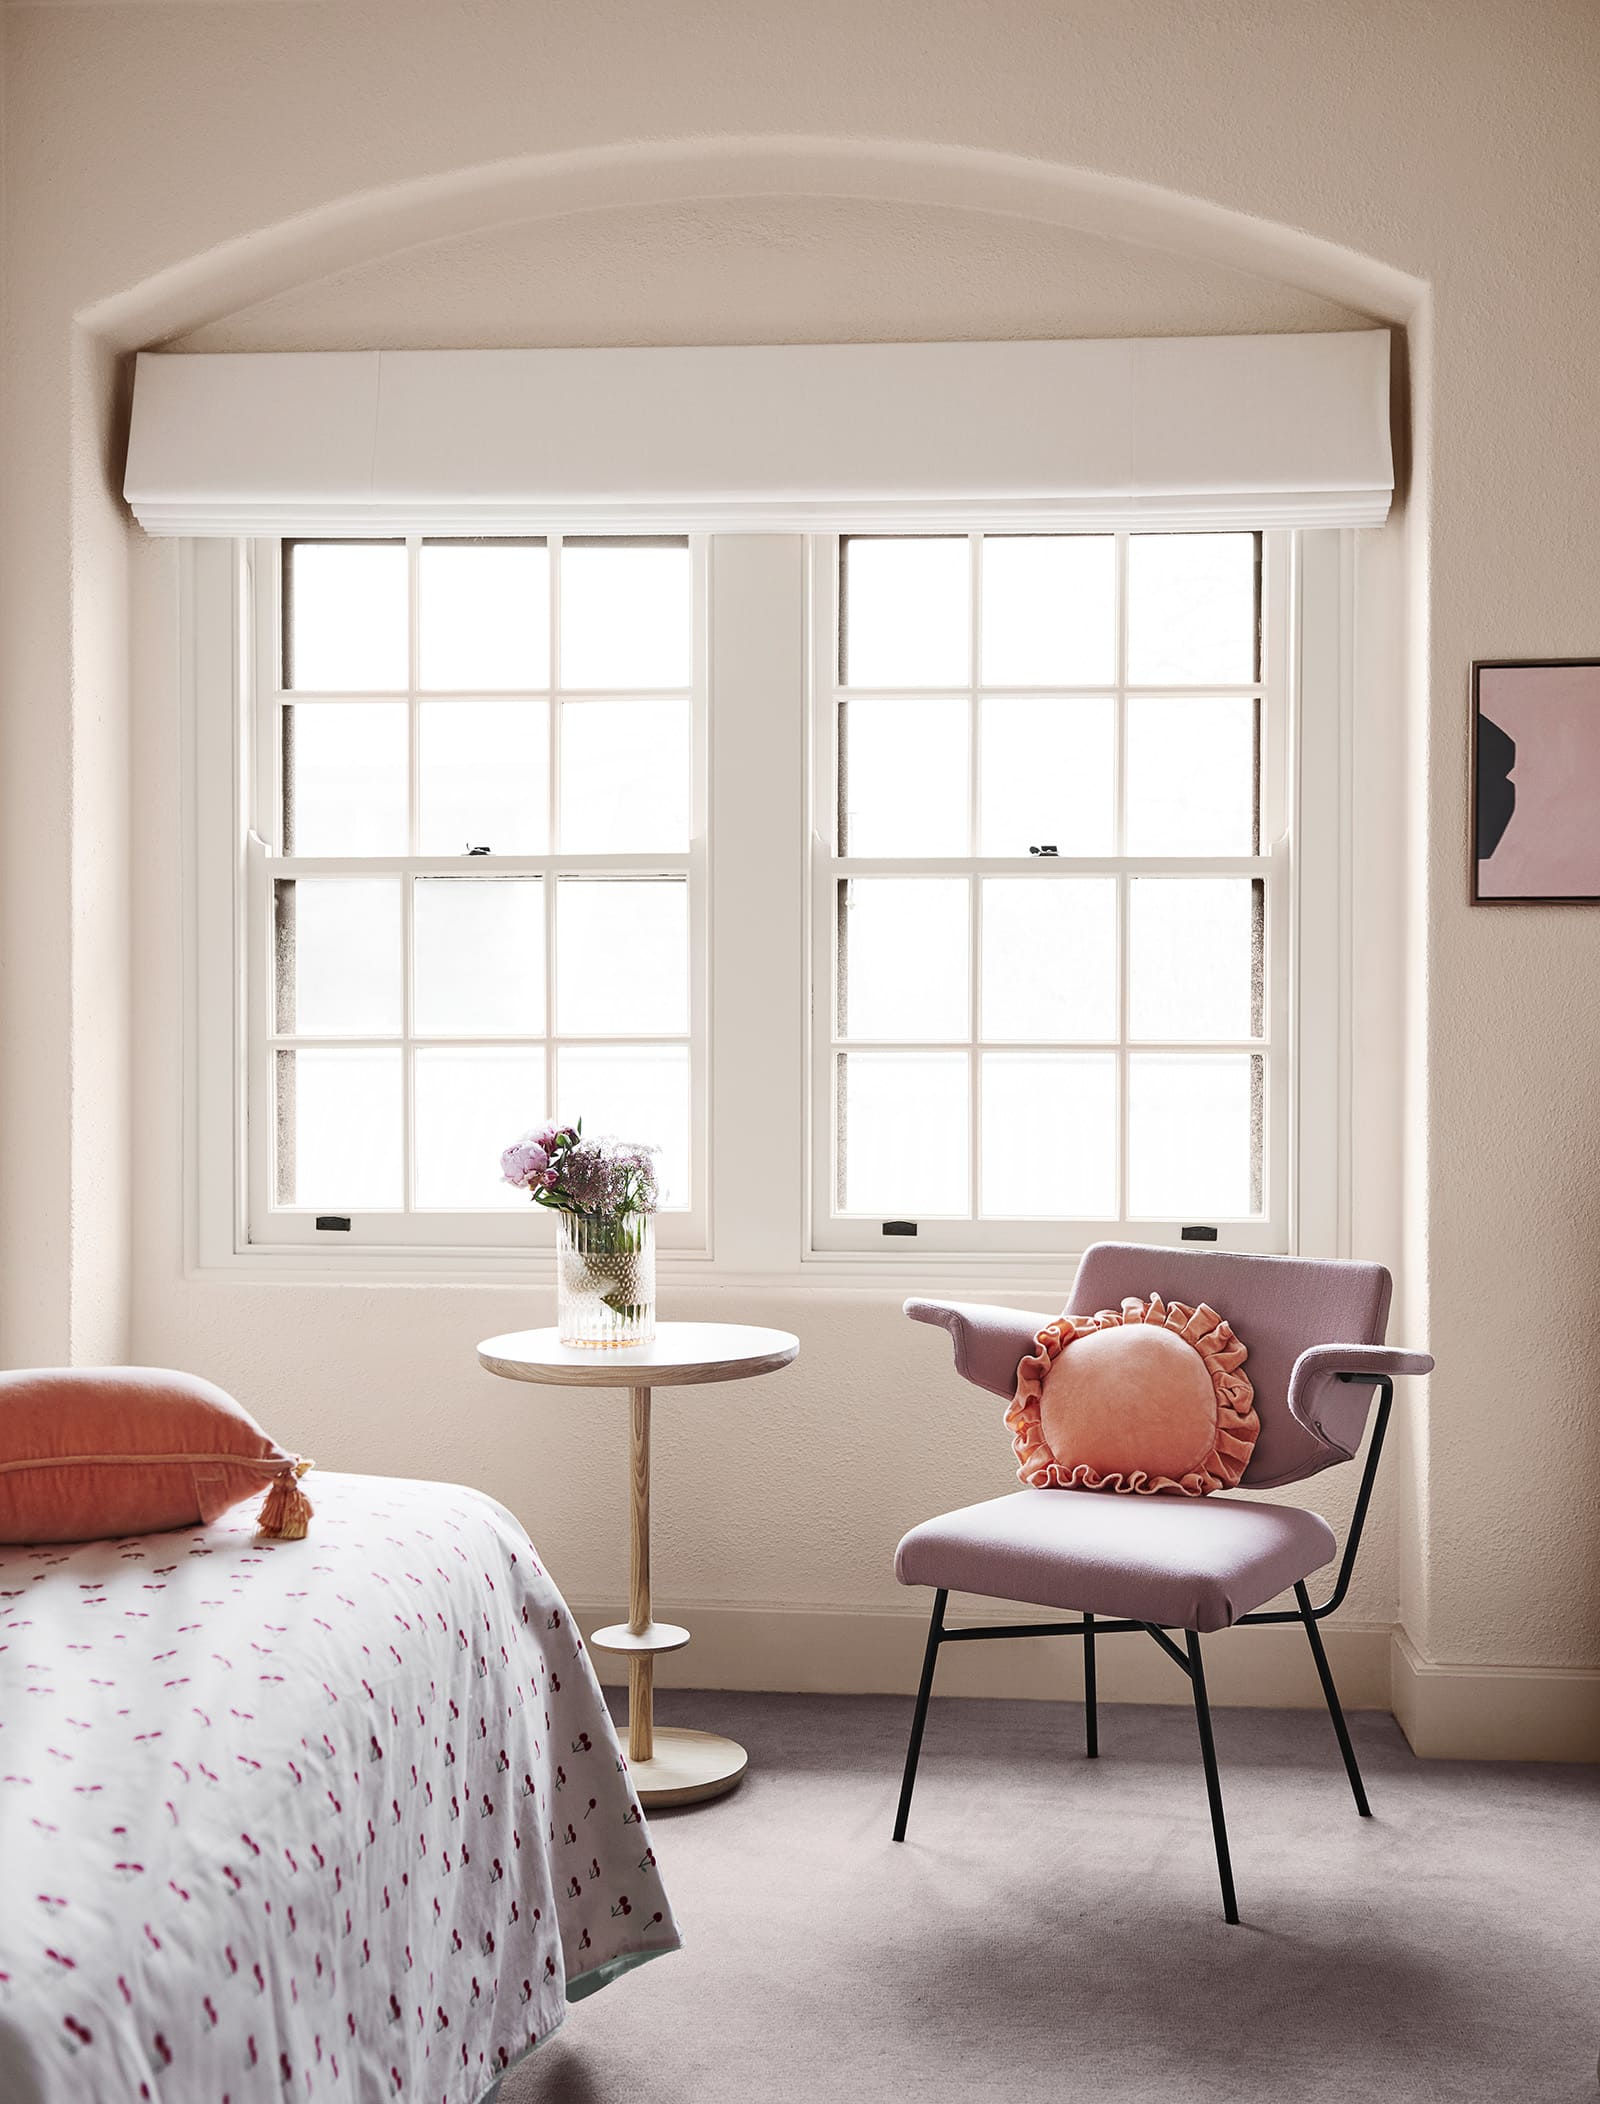 pale apricot bedroom with bay with traditional window frame and pink chair